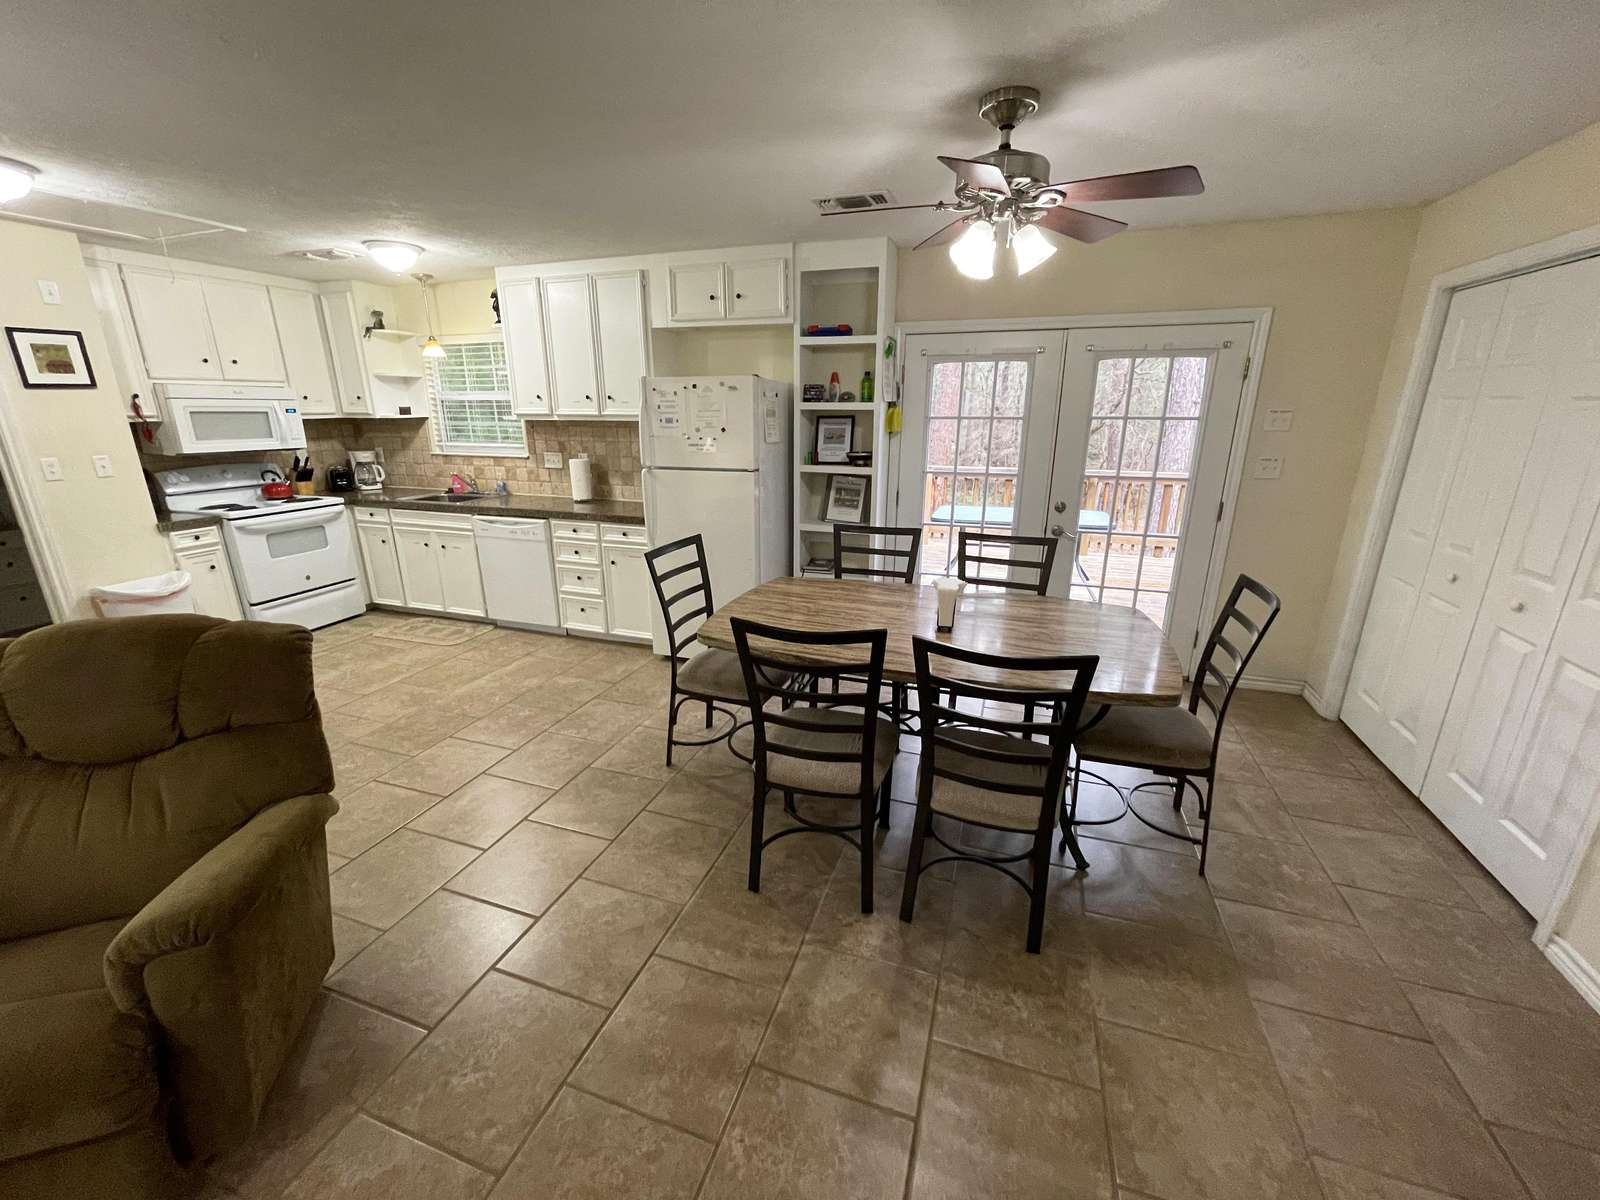 The Kitchen/Dining area.